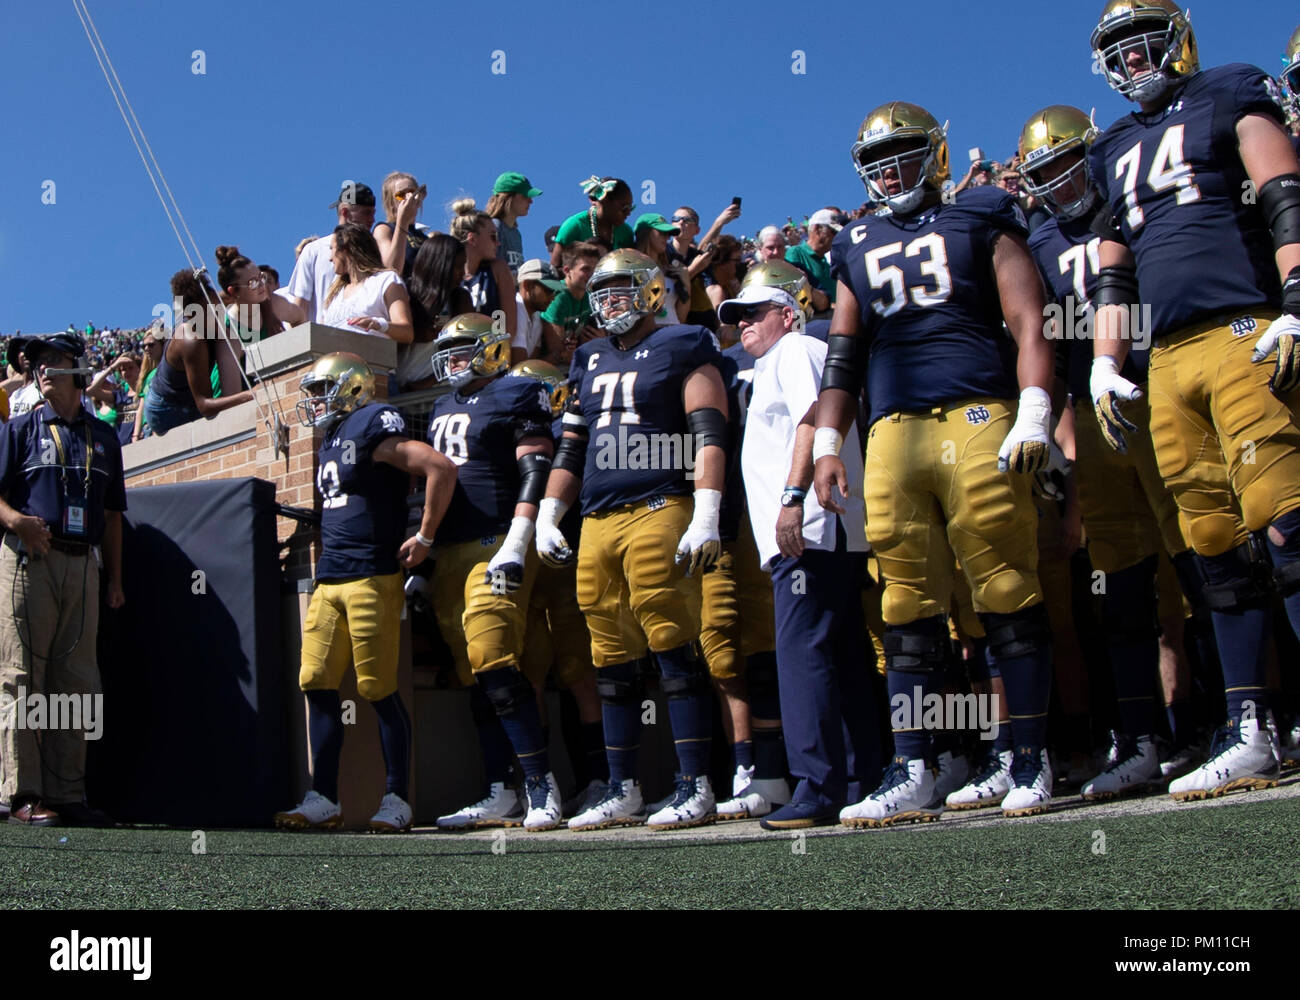 Notre Dame Football Tunnel High Resolution Stock Photography And Images Alamy